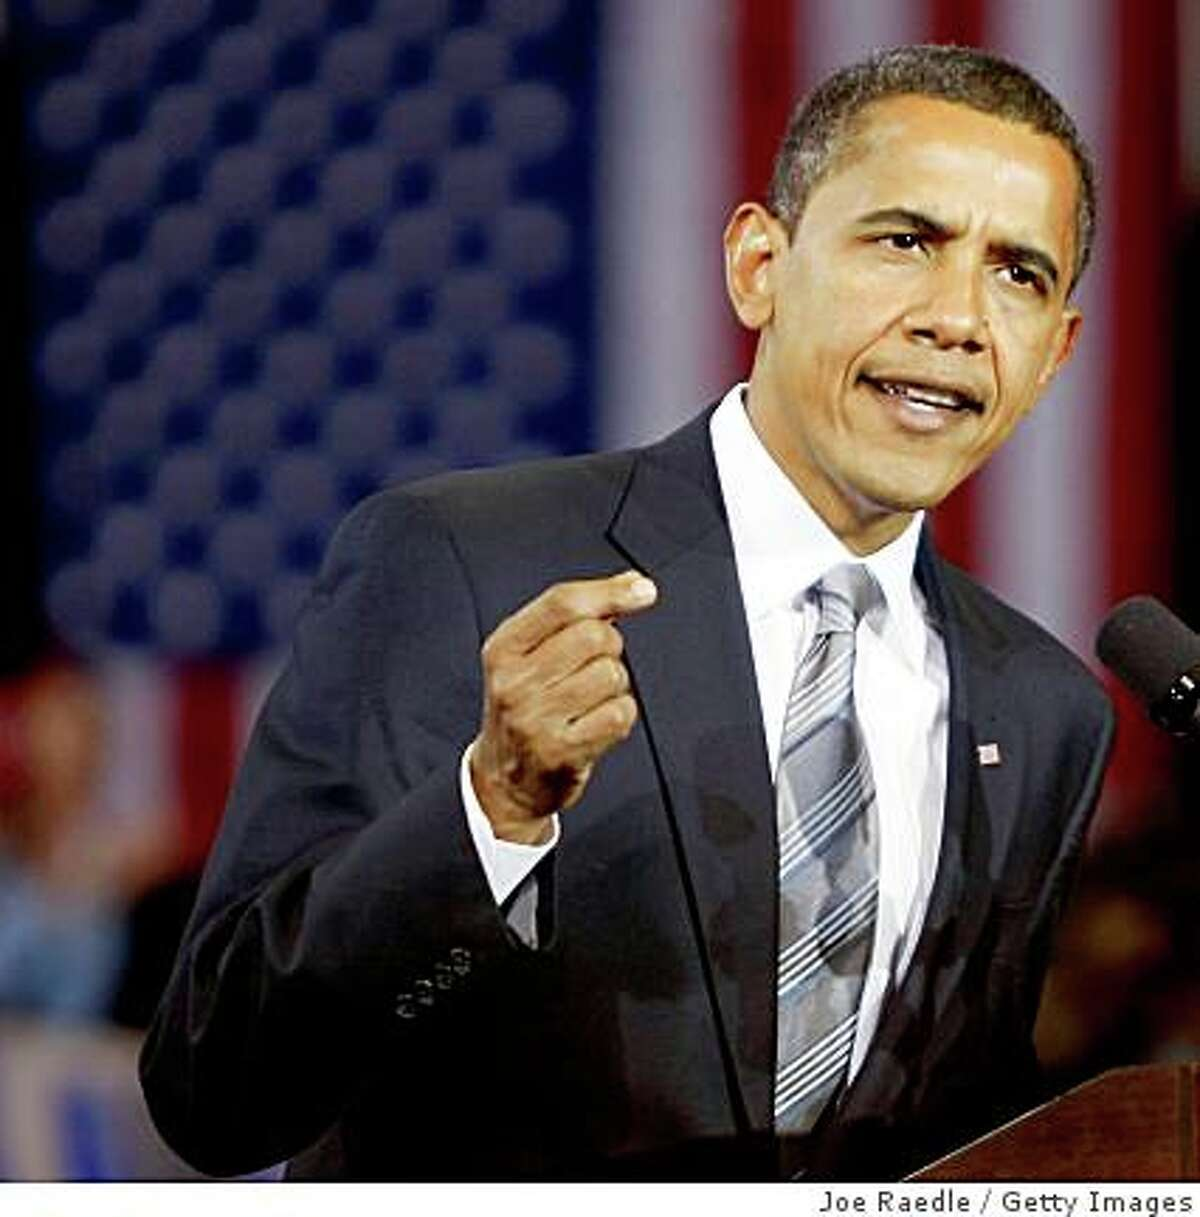 Democratic presidential nominee U.S. Sen. Barack Obama (D-IL) speaks during a campaign rally at James Madison University October 28, 2008 in Harrisonburg, Virginia. Obama continues to campaign one week before the election on November 4.